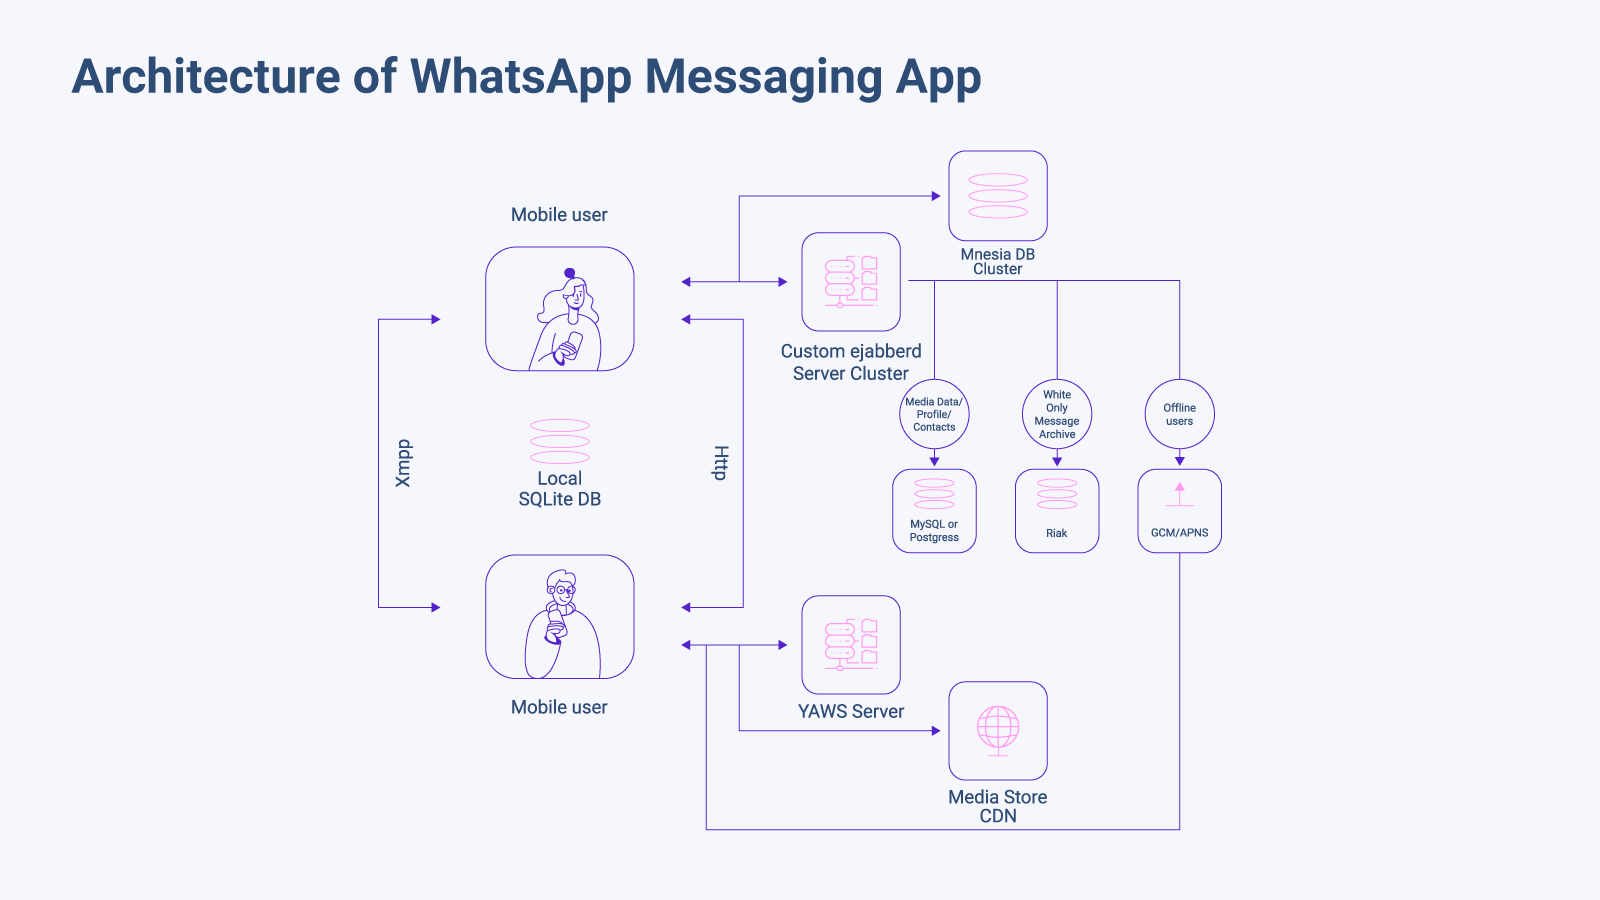 Architecture of WhatsApp Messaging App